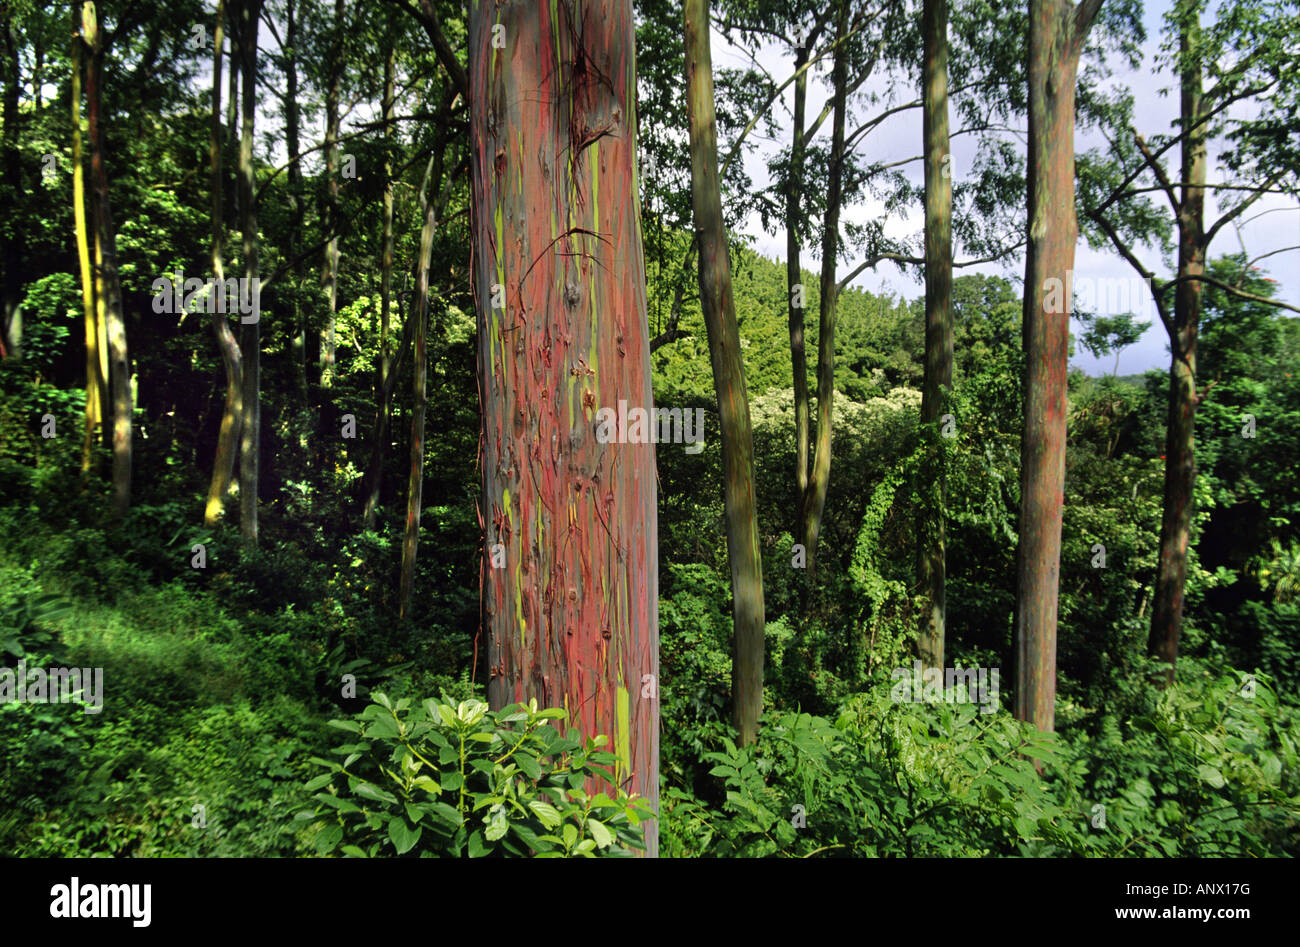 rainbow eucalyptus, Painted eucalyptus (Eucalyptus deglupta), The green and red bark is one of natures incredible - Stock Image